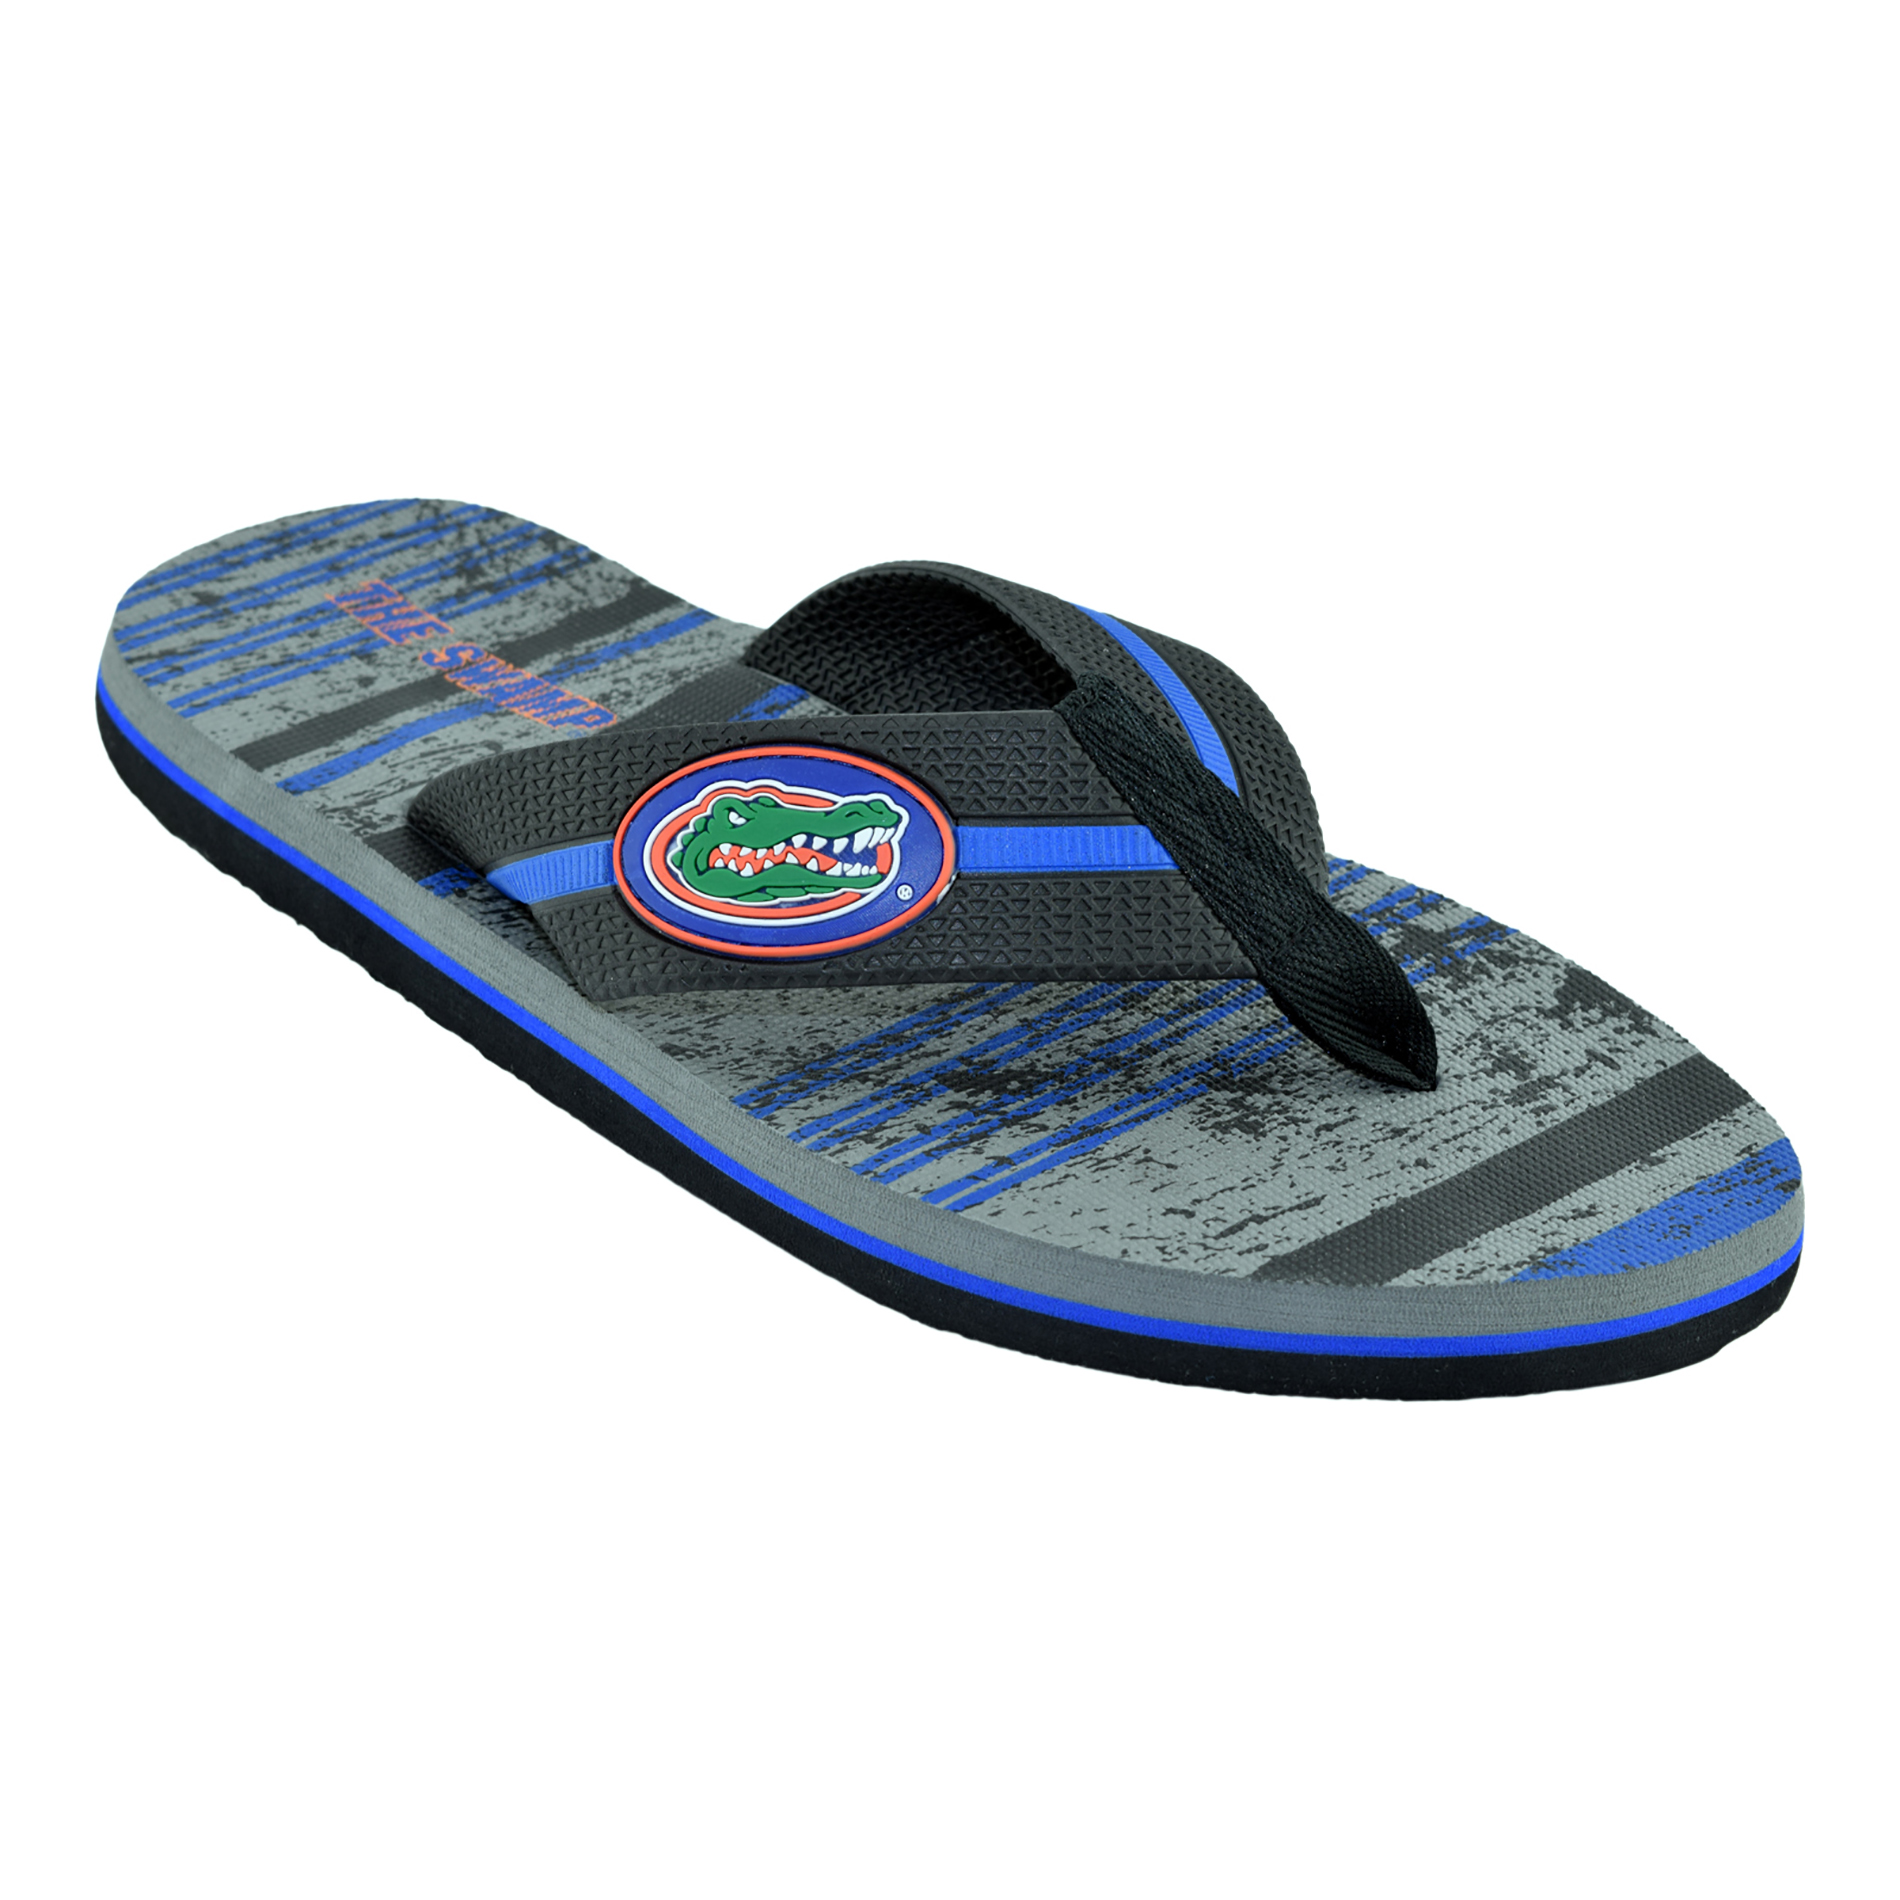 00bbfb3f9 20+ Gator Flip Flops Pictures and Ideas on STEM Education Caucus